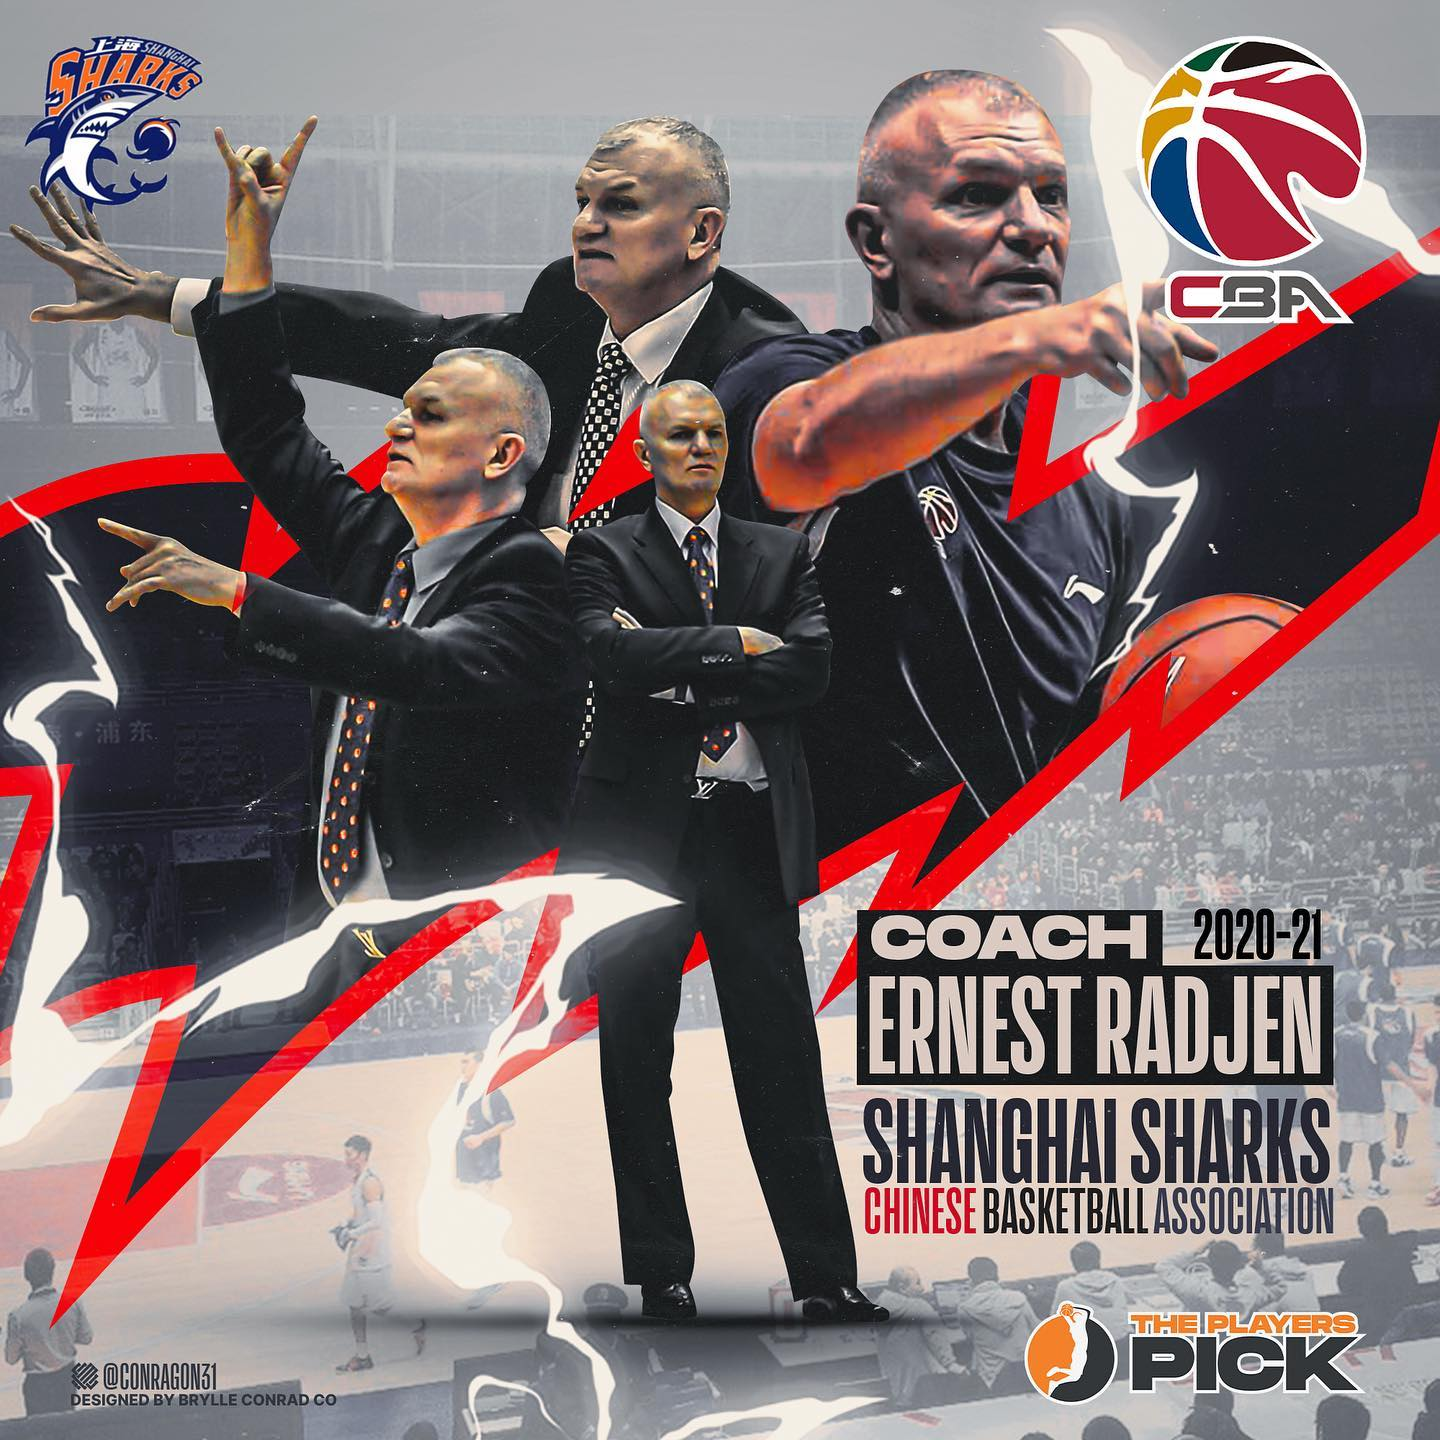 Coach Ernest Radjen joined Shanghai Sharks in CBA China!